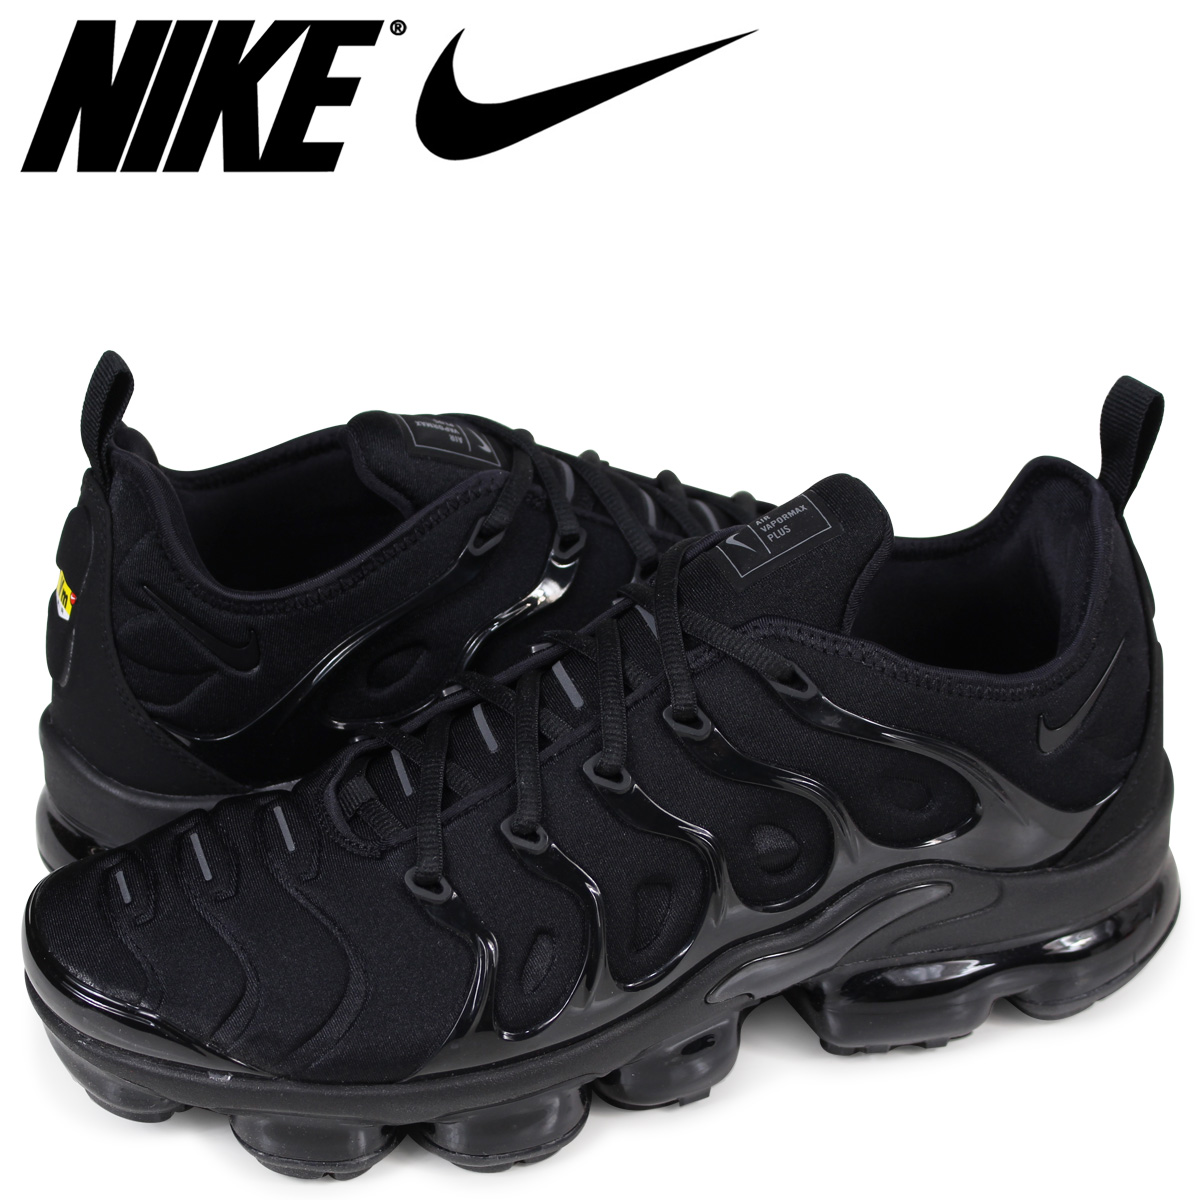 best authentic 5e9ae 615ad NIKE AIR VAPORMAX PLUS Nike air vapor max plus sneakers men black  924,453-004